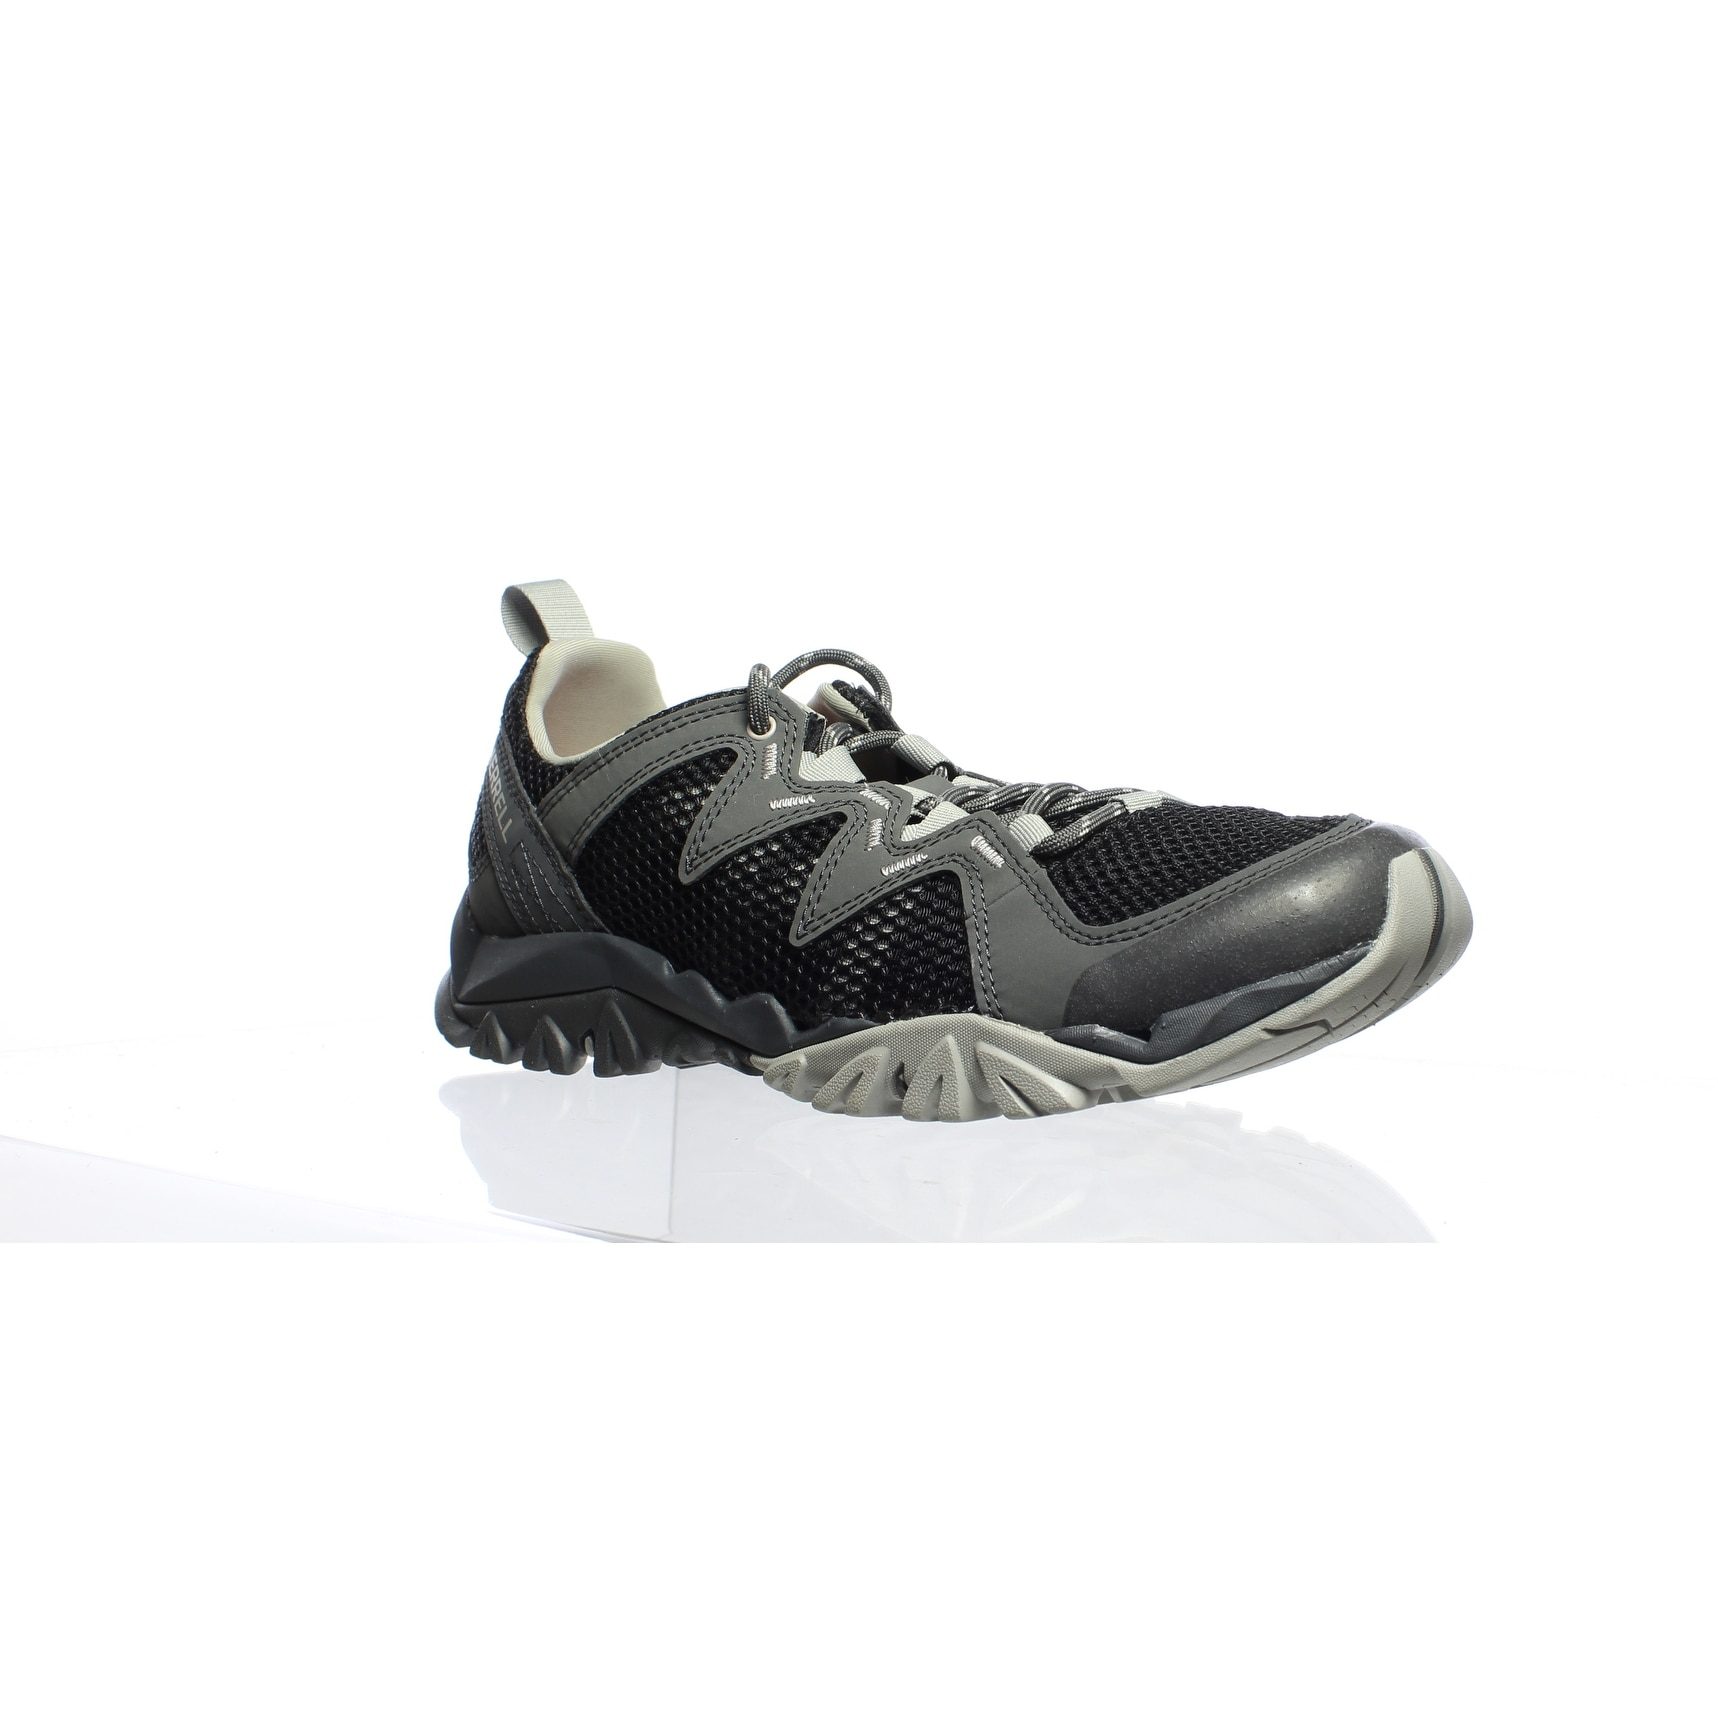 big clearance sale info for special discount of Merrell Mens Tetrex Rapid Crest Black Hiking Shoes Size 8